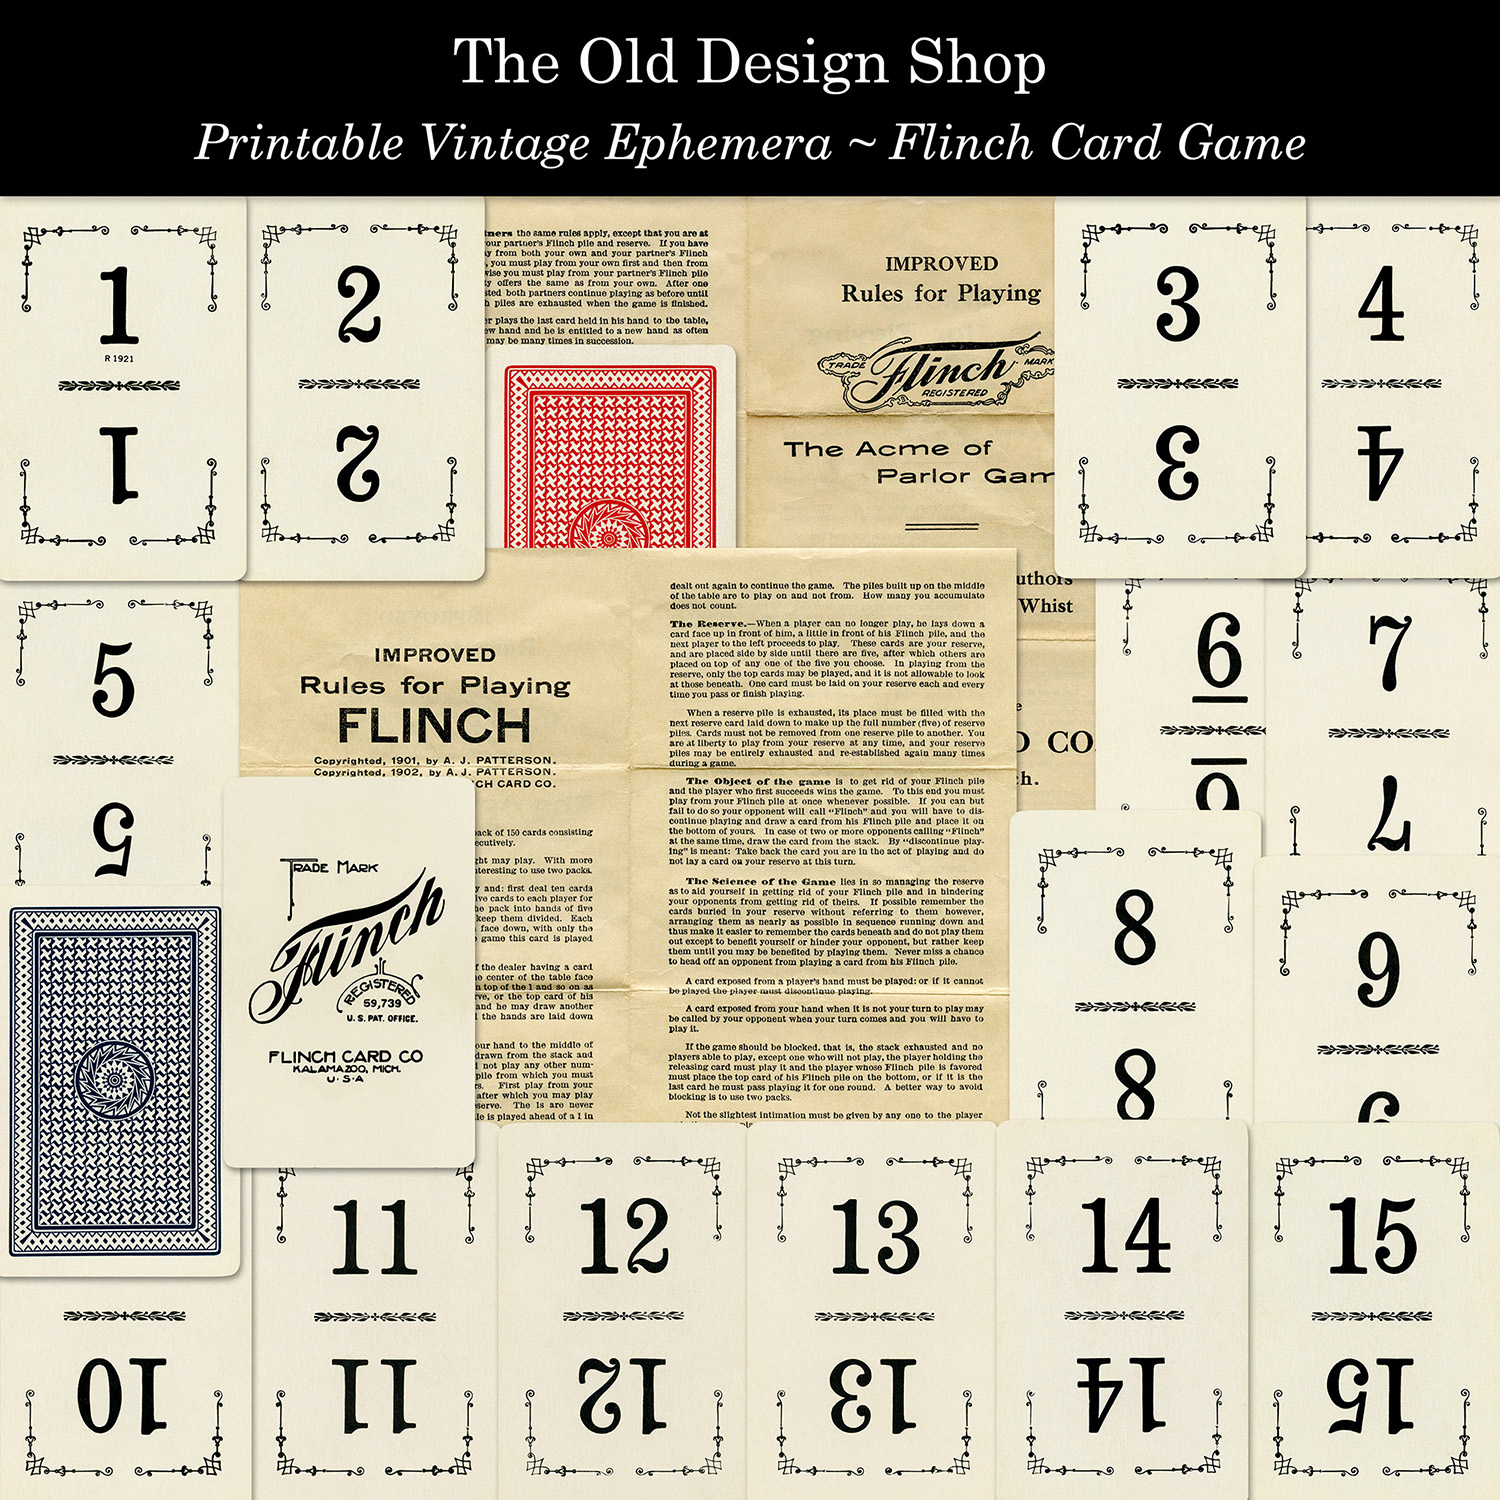 printable vintage ephemera flinch card game